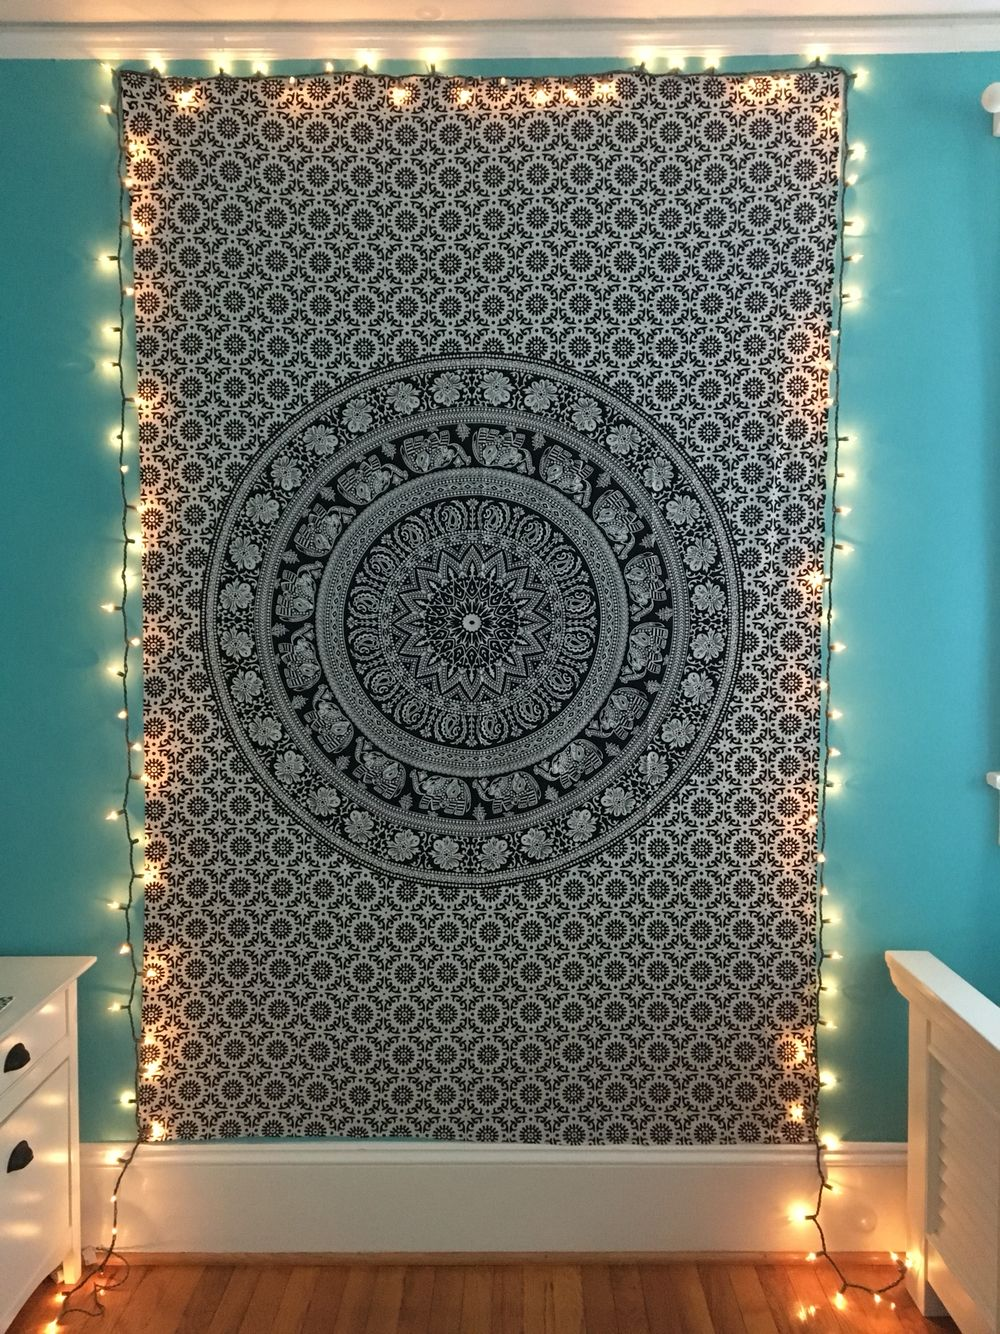 black and white wall tapestry with string lights around the border in turquoise room  bedroom